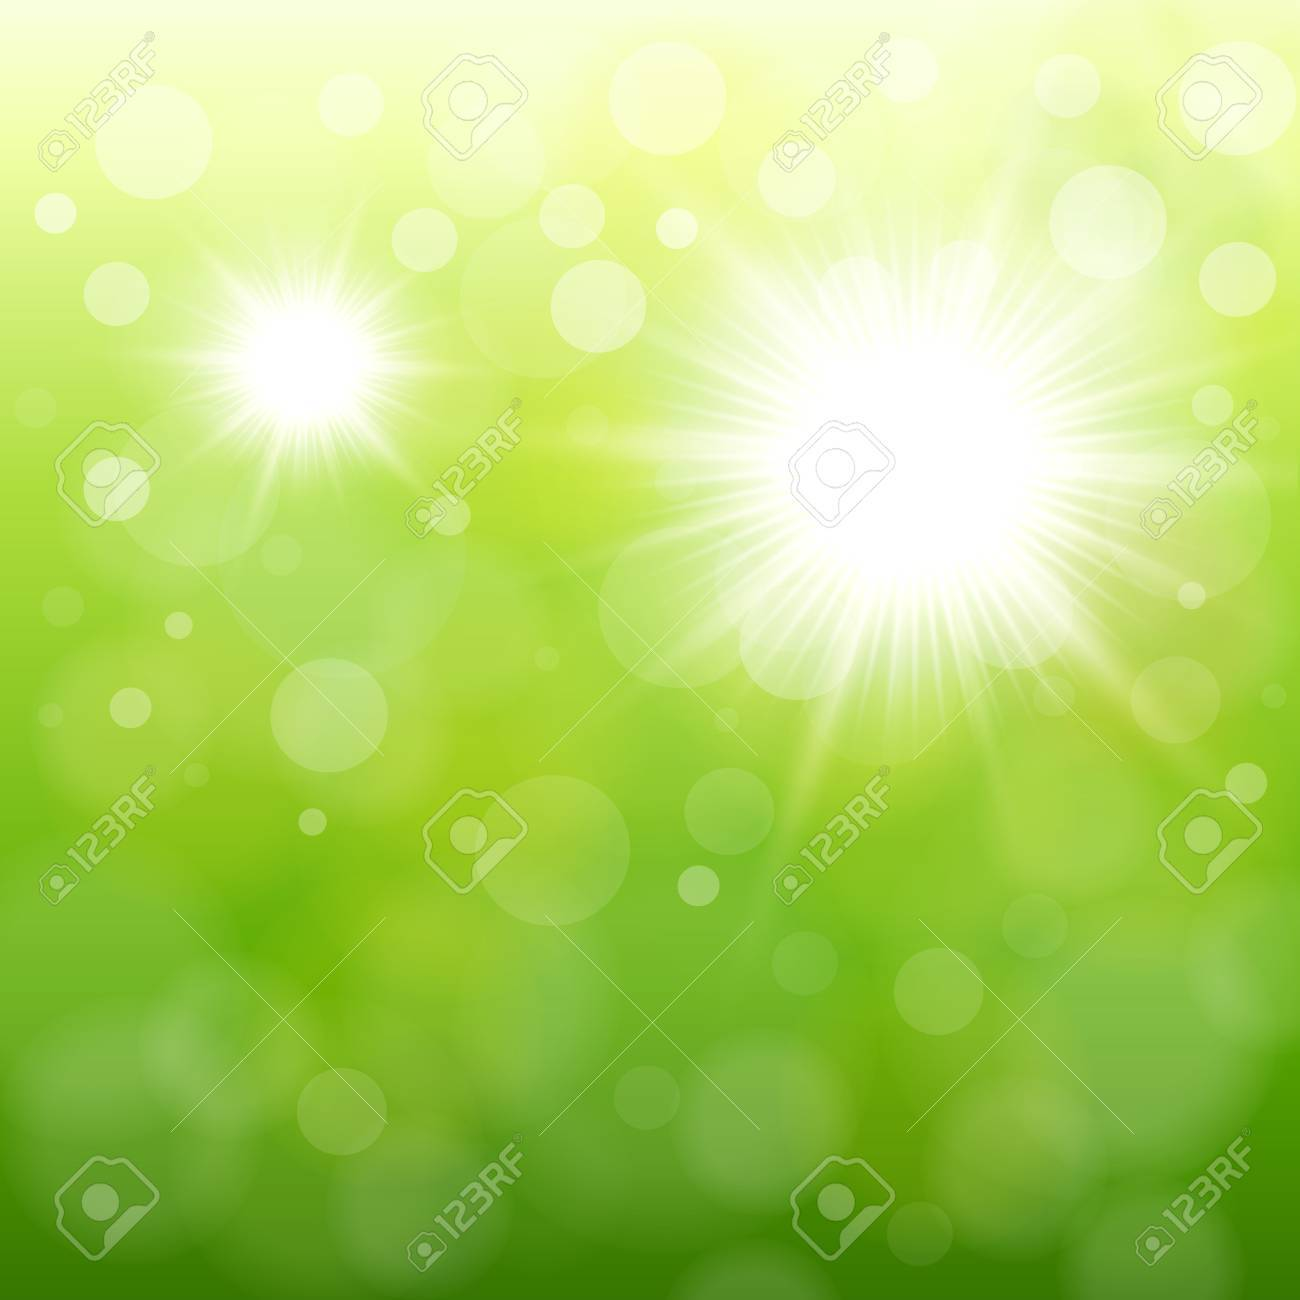 Natural green background with vector sun. Stock Vector - 17105980